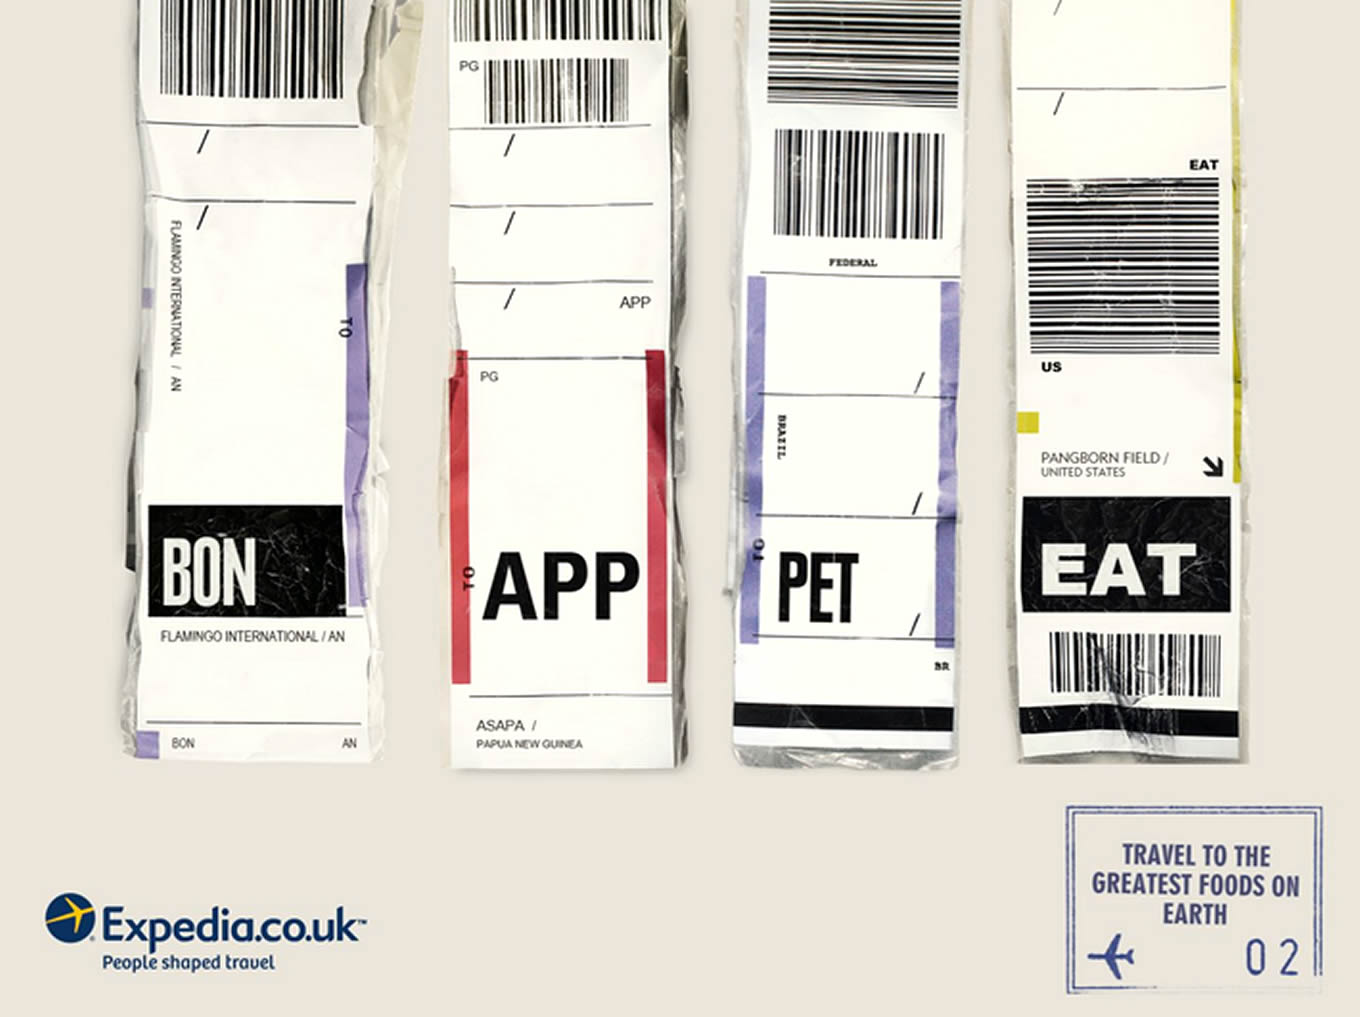 Bon Appetit Airport Code, Luggage Tags Marketing Campaign by Expedia UK